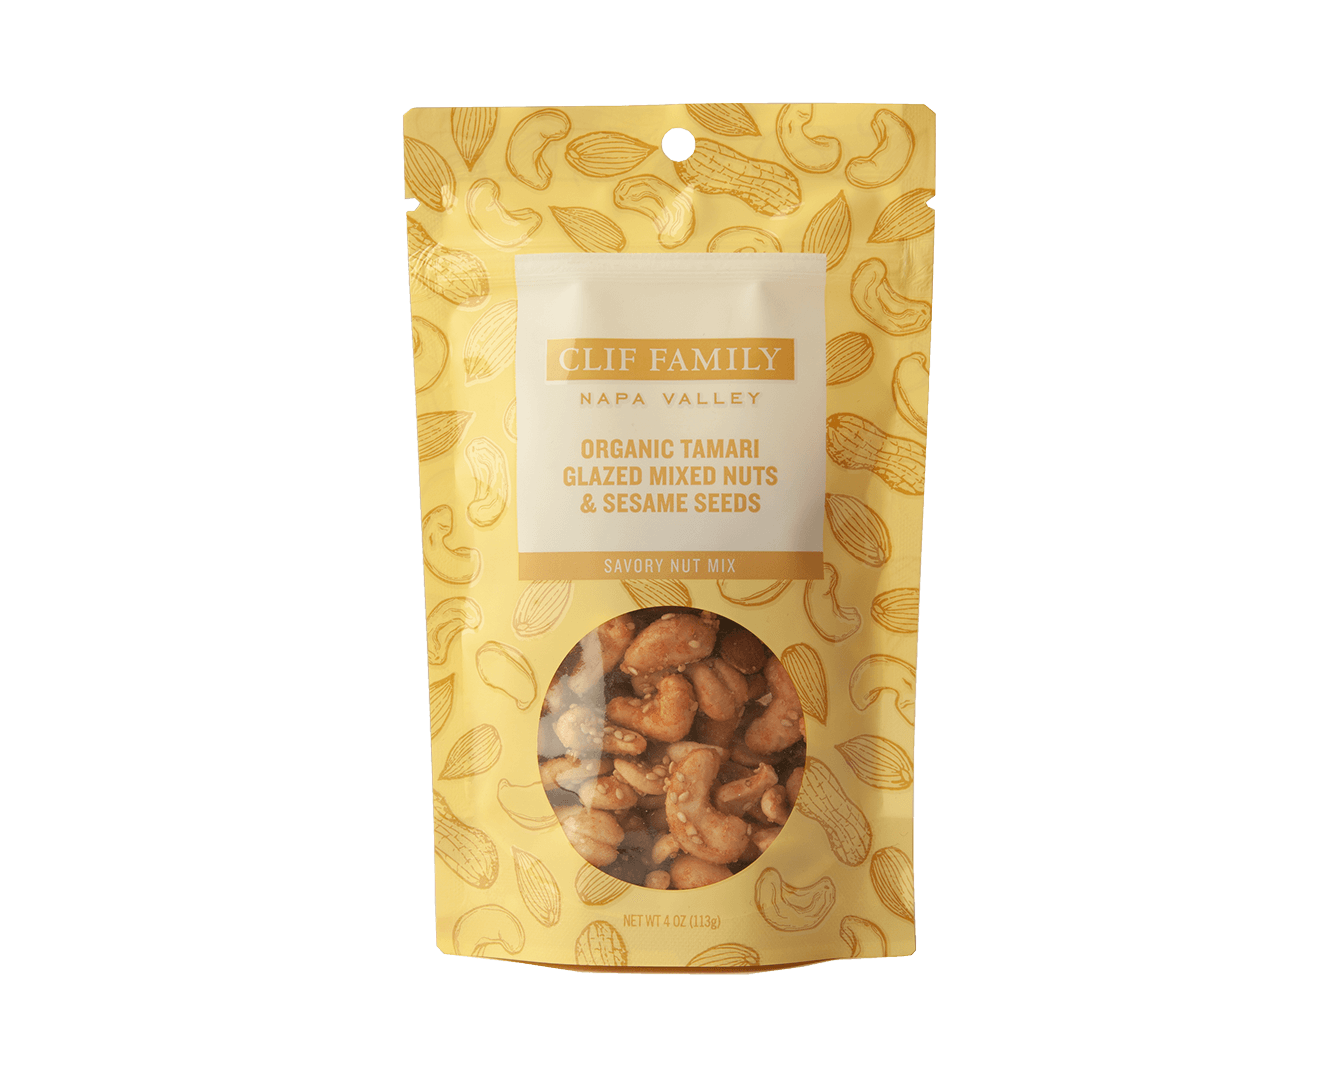 Organic Tamari Glazed Mixed Nuts & Sesame Seeds packaging